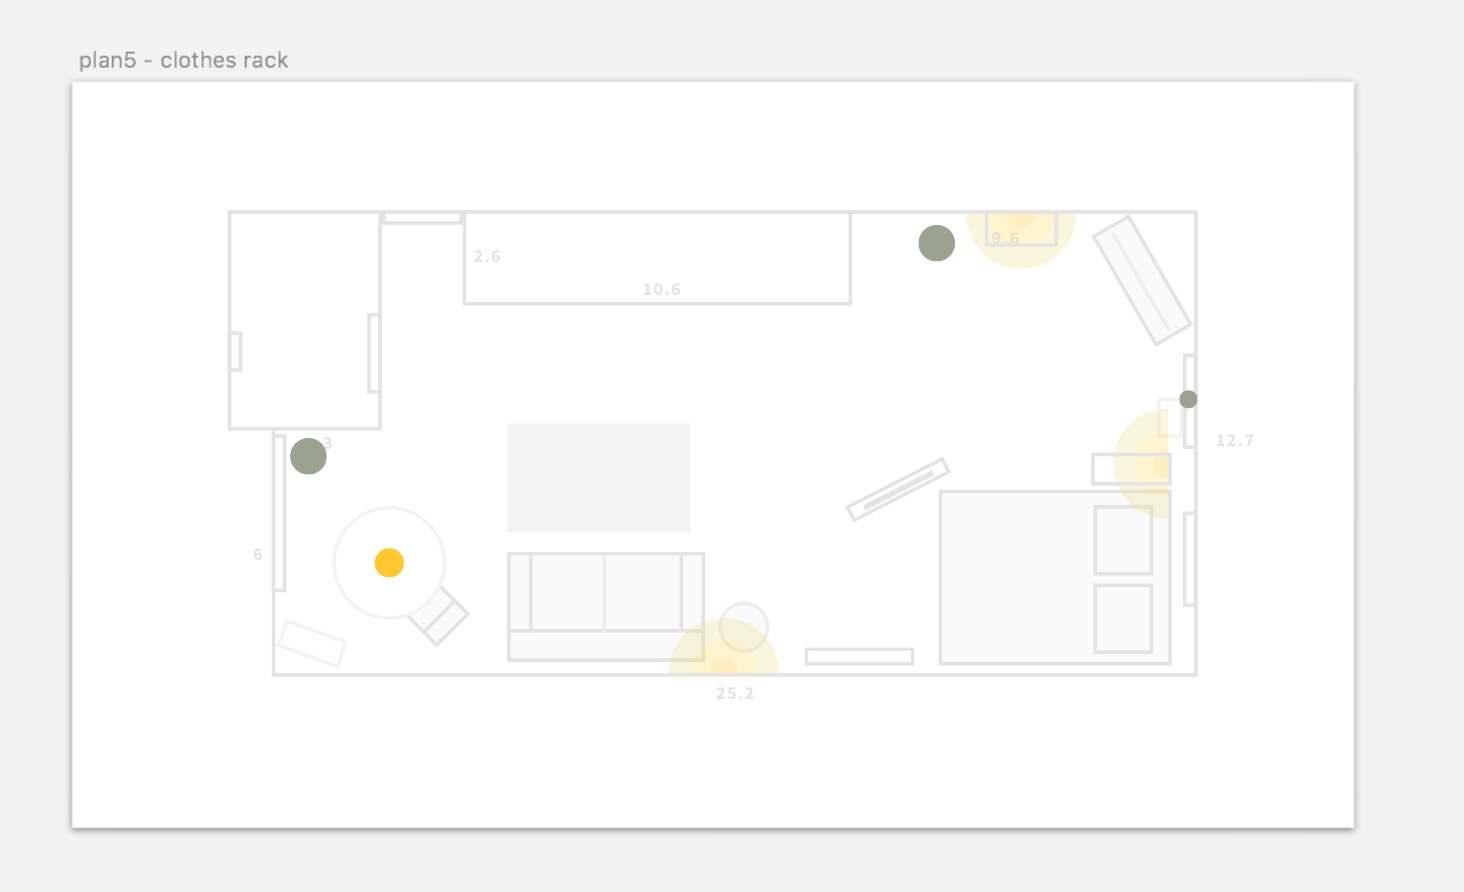 How To Use Sketch To Design Floor Plans By Ling Zhou Design Sketch Medium